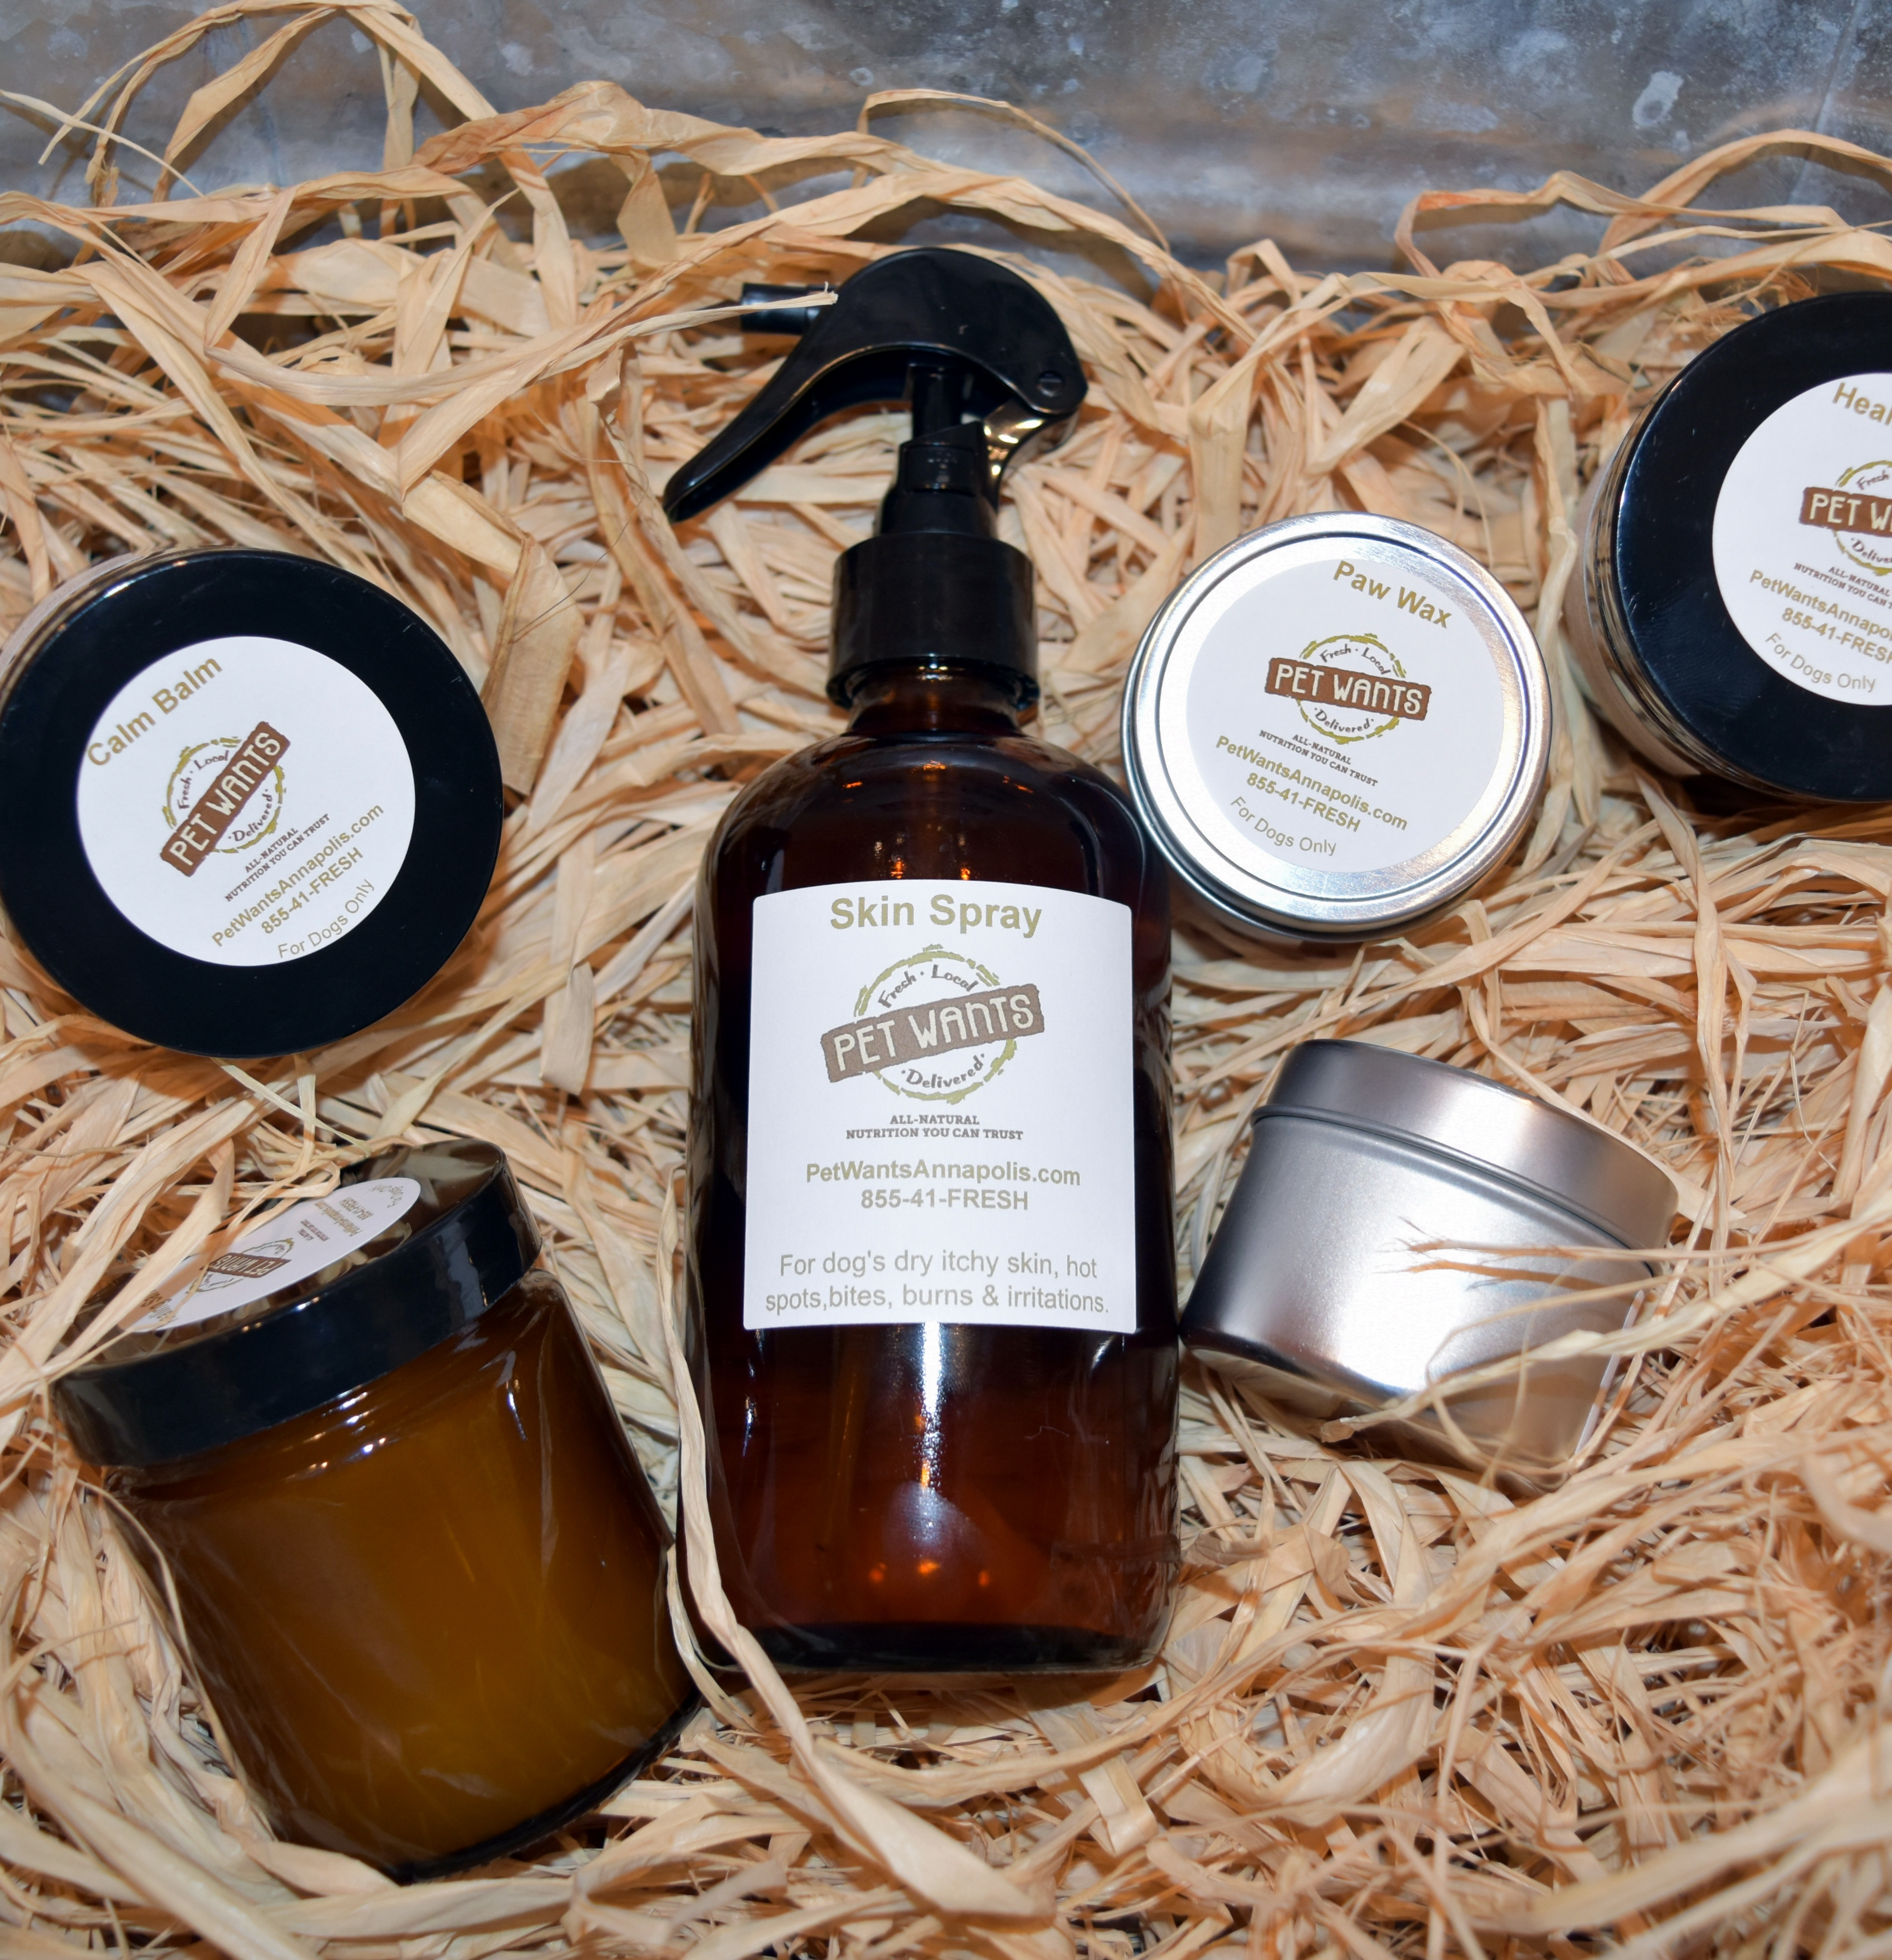 Housemade Balms, Salves and Sprays